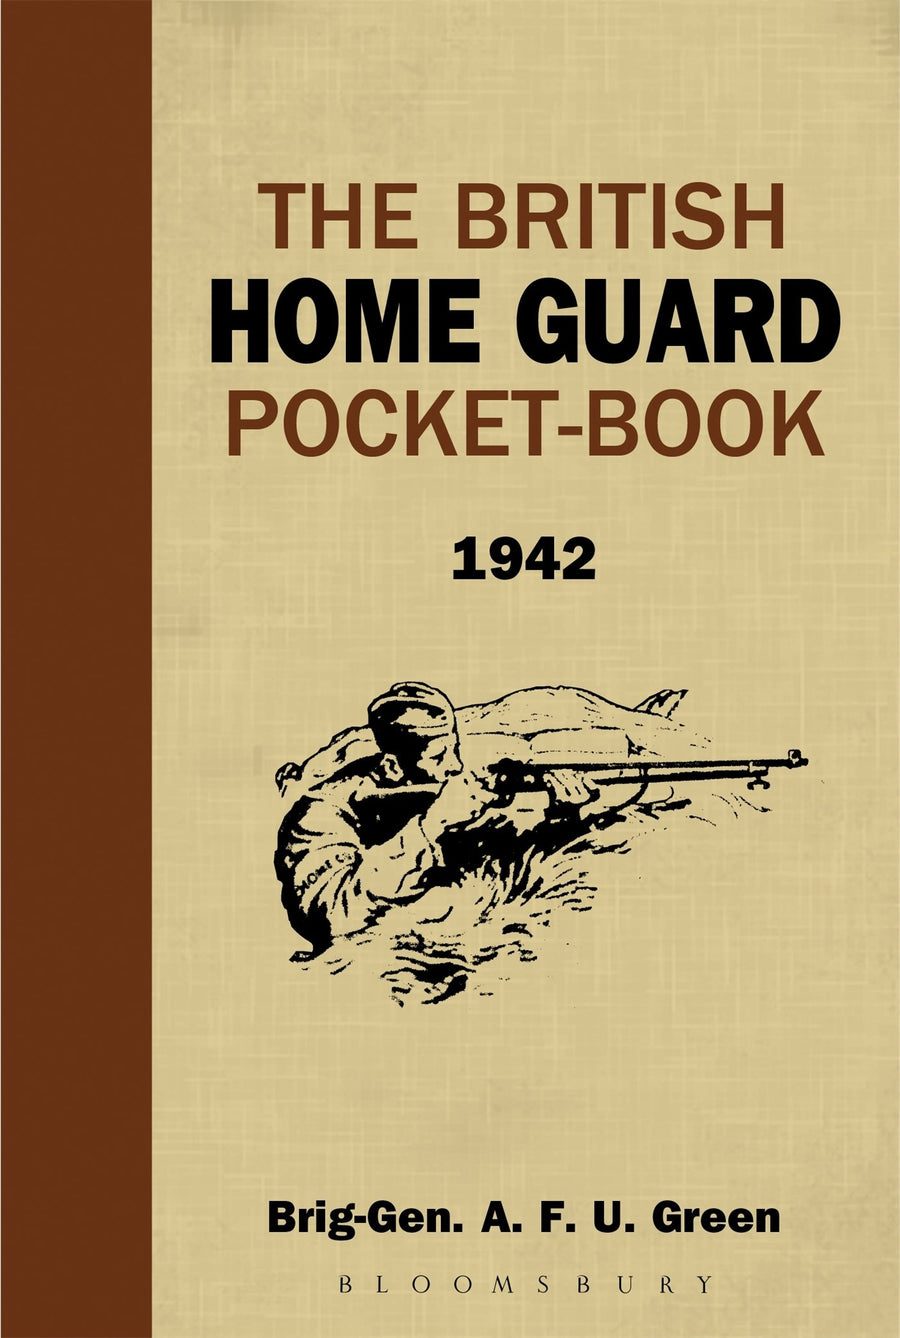 The British Home Guard Pocketbook 1942